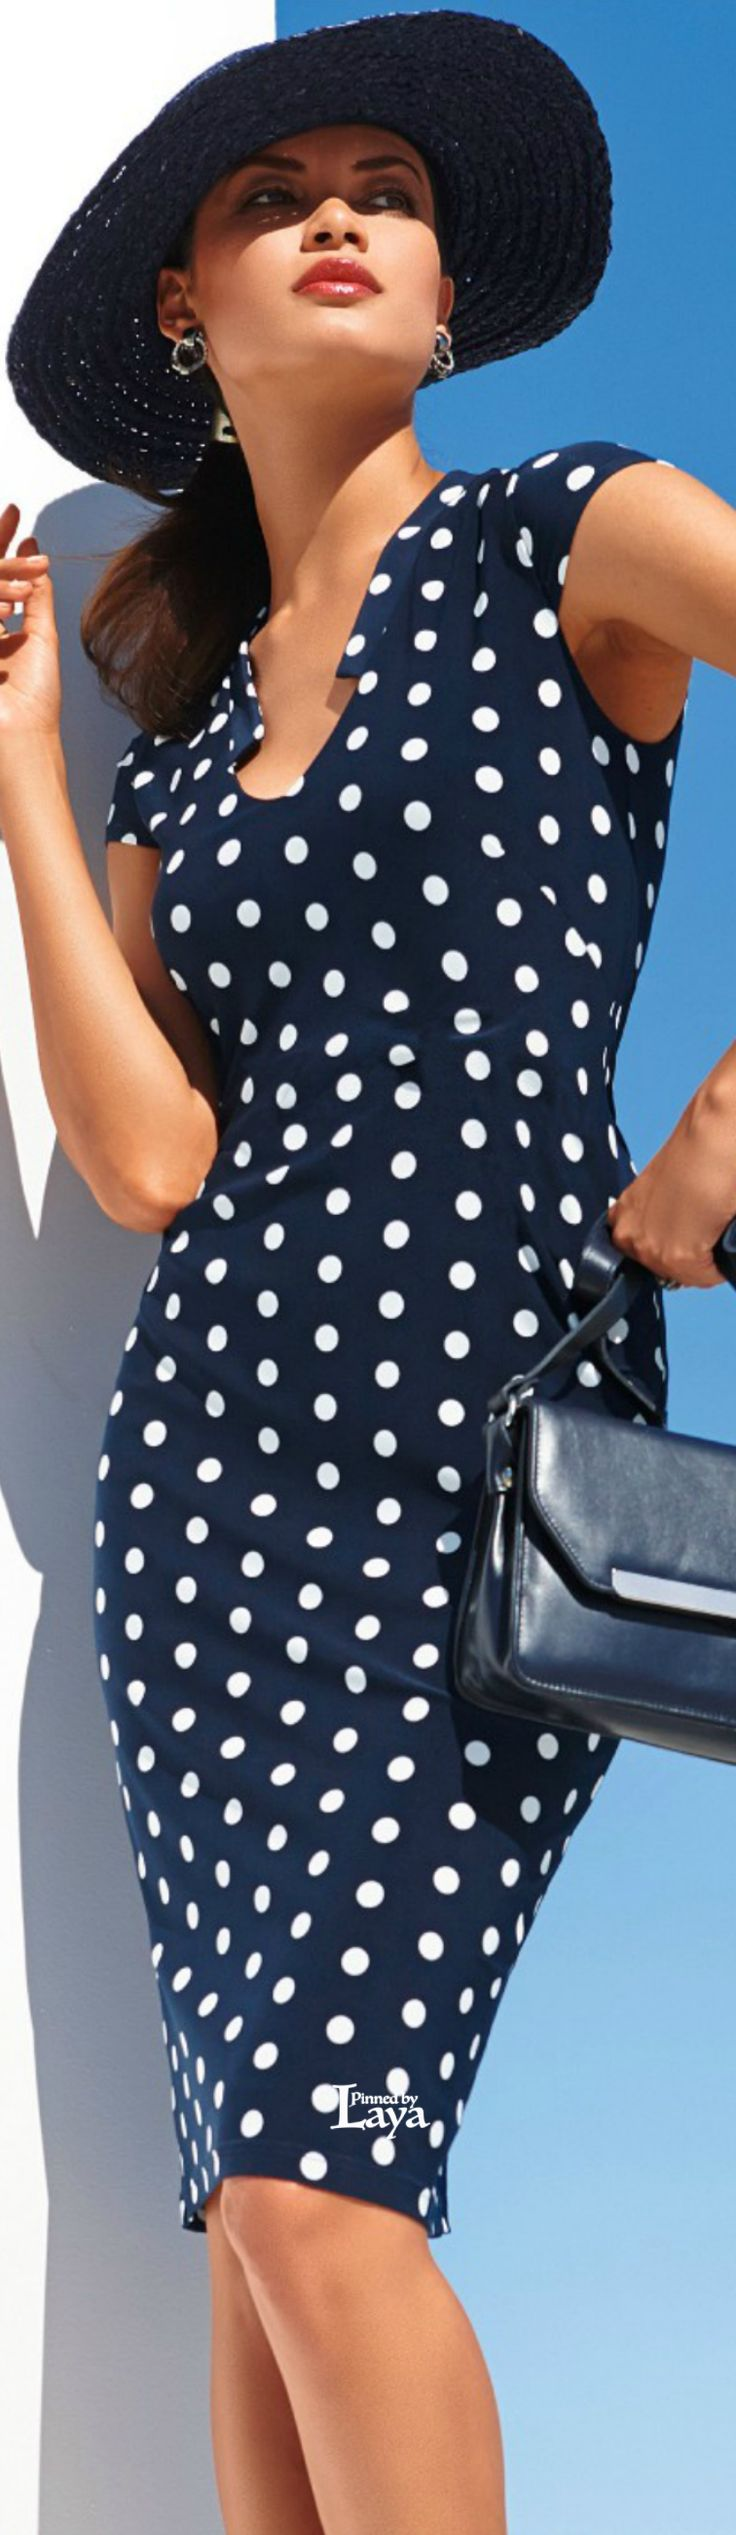 """♔LAYA♔MADELEINE♔ This polka dots does not look """"playful"""" to be G-based type. It's dynamic, regular and classic, so  I'd say - DC. One of my DC friends has a similar polka dot dress and look great in it"""